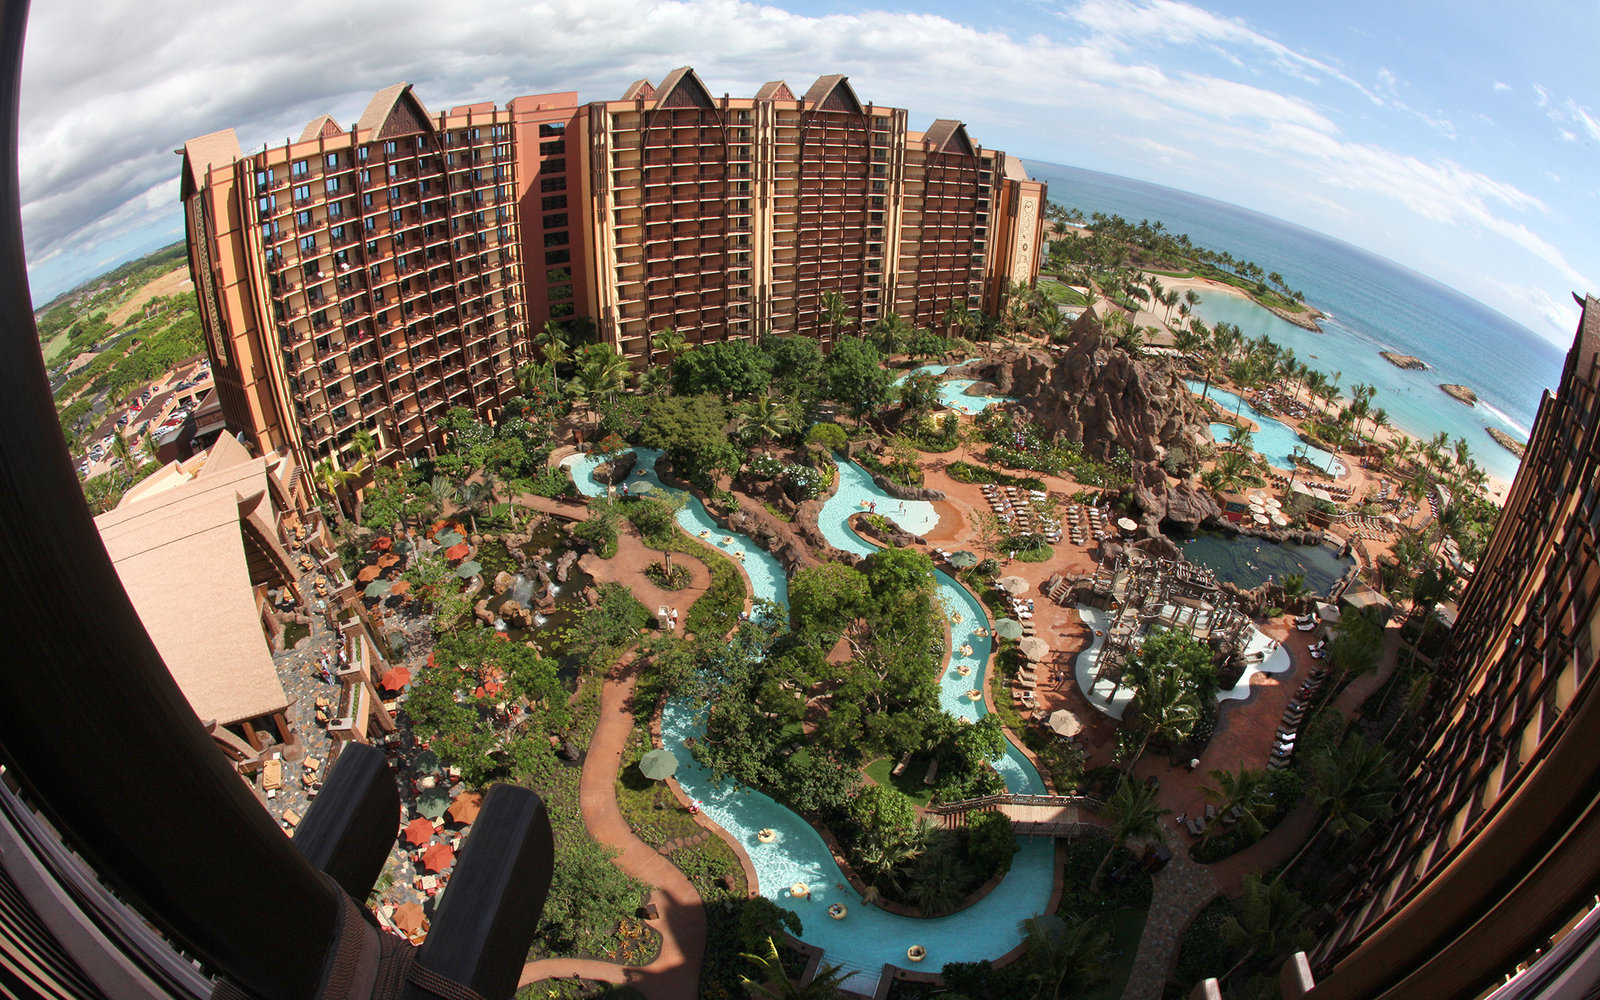 No. 15: Aulani, a Disney Resort & Spa, Ko Olina, Hawaii